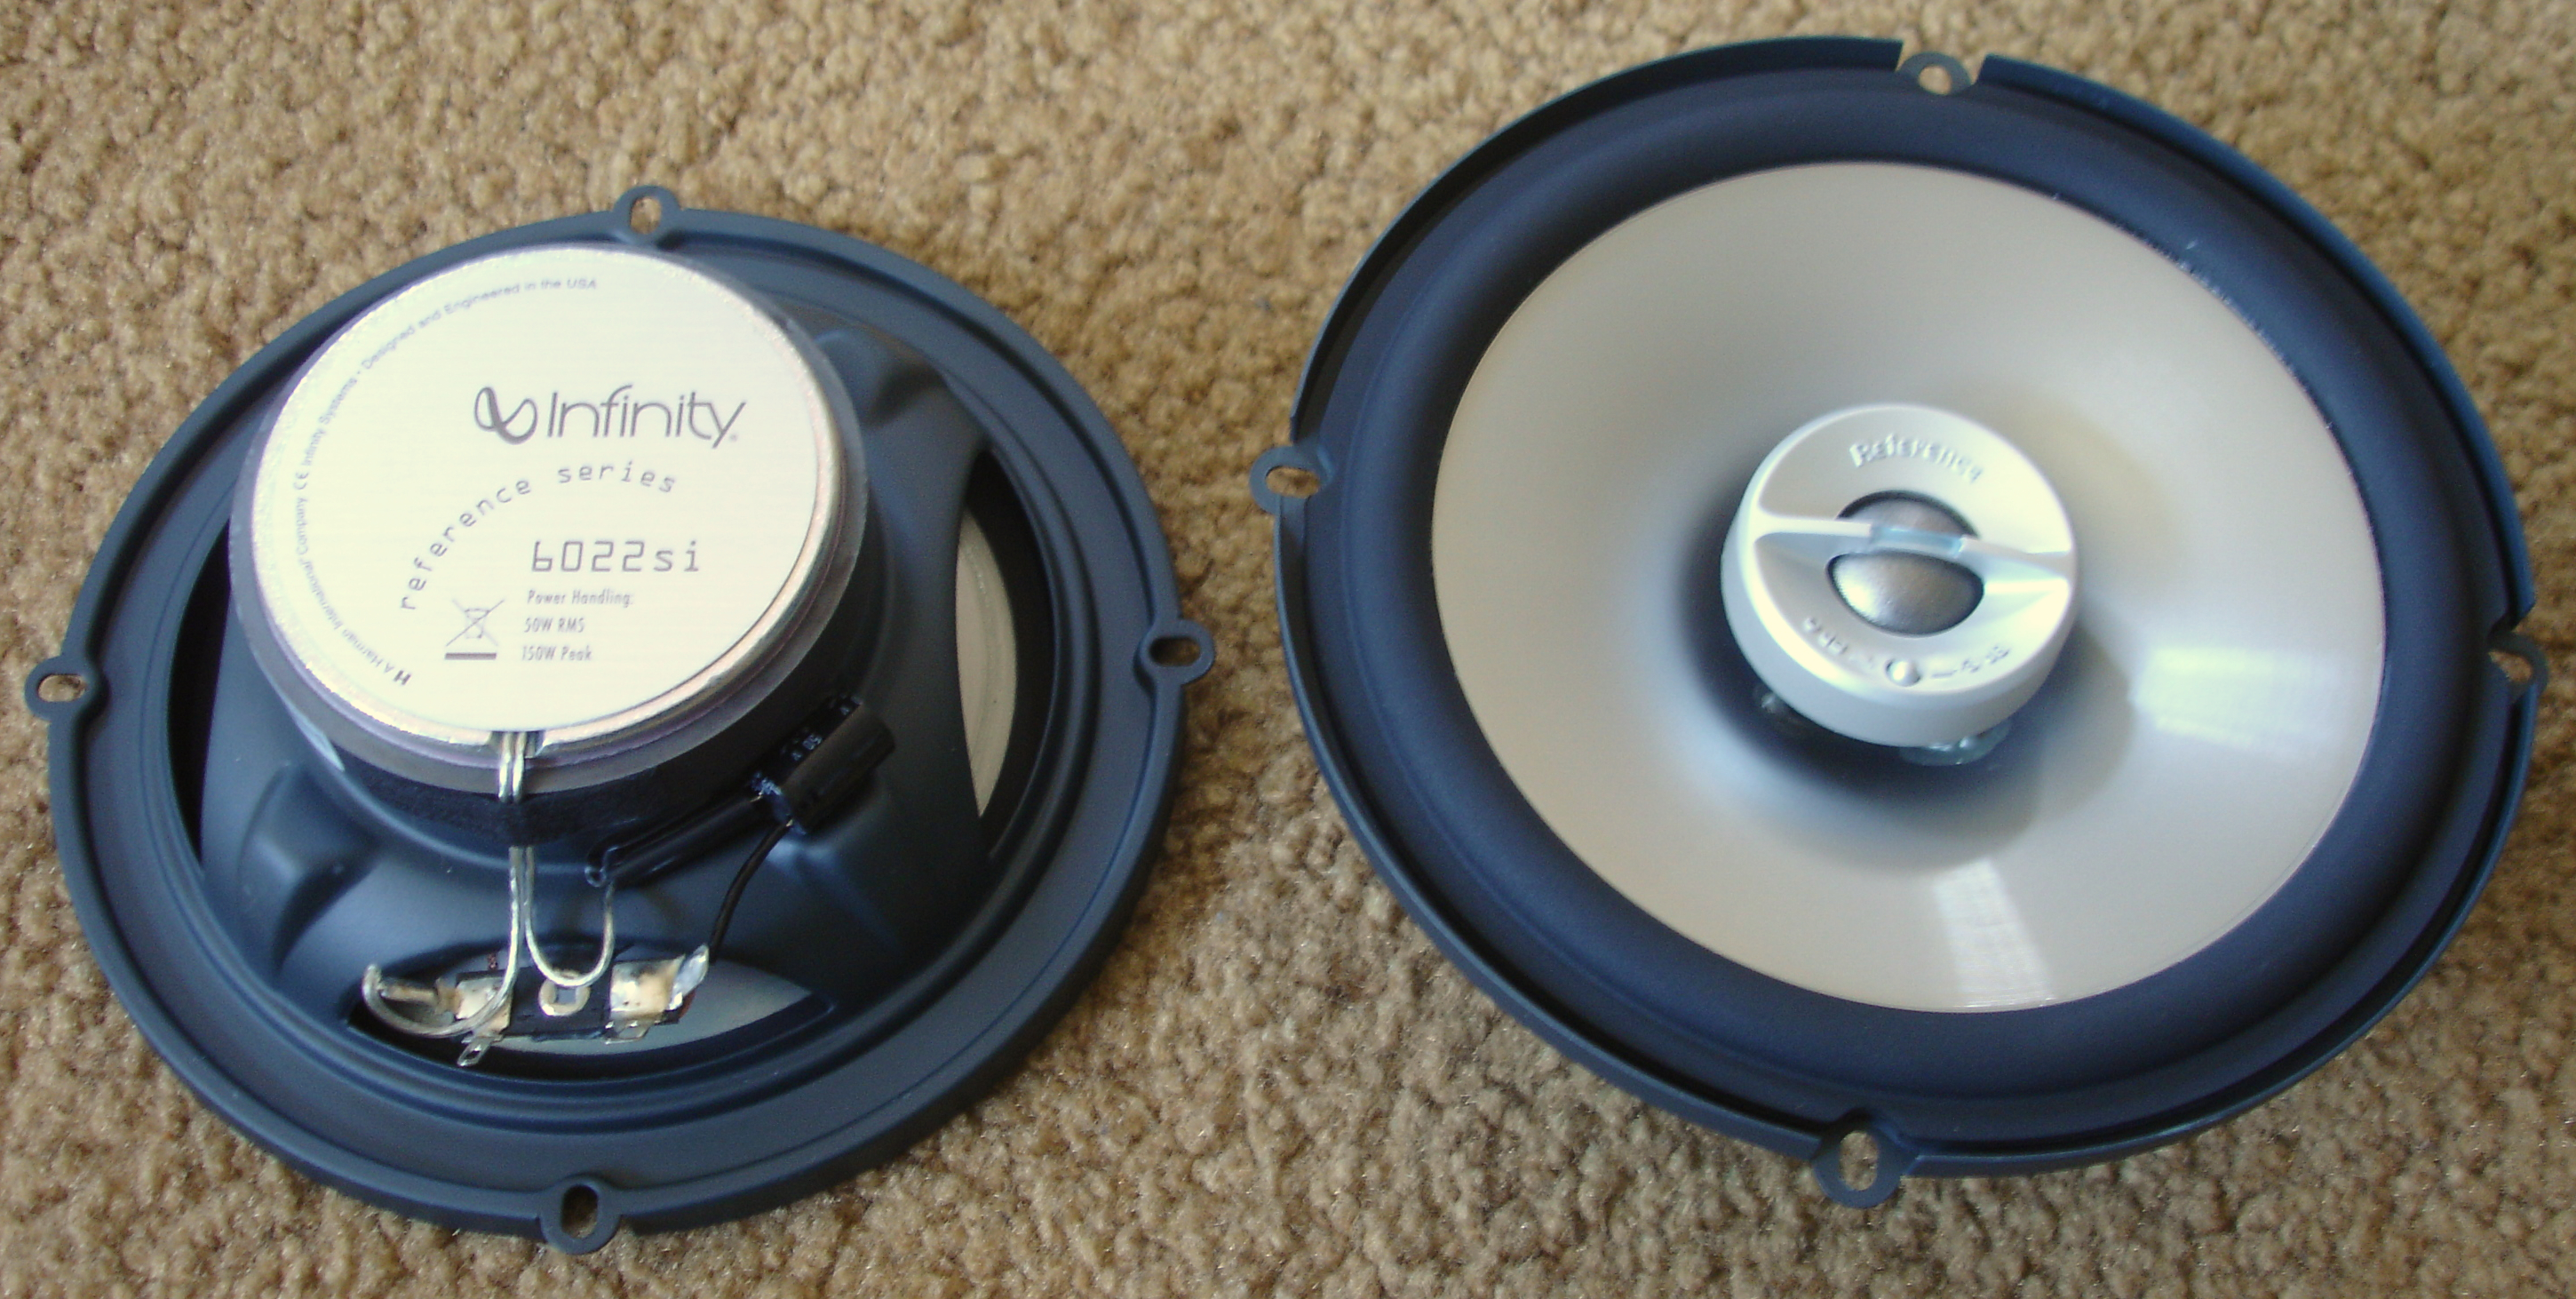 infinity car speakers. file:infinity reference 6022si 6.5inch car speaker top view.jpeg infinity speakers